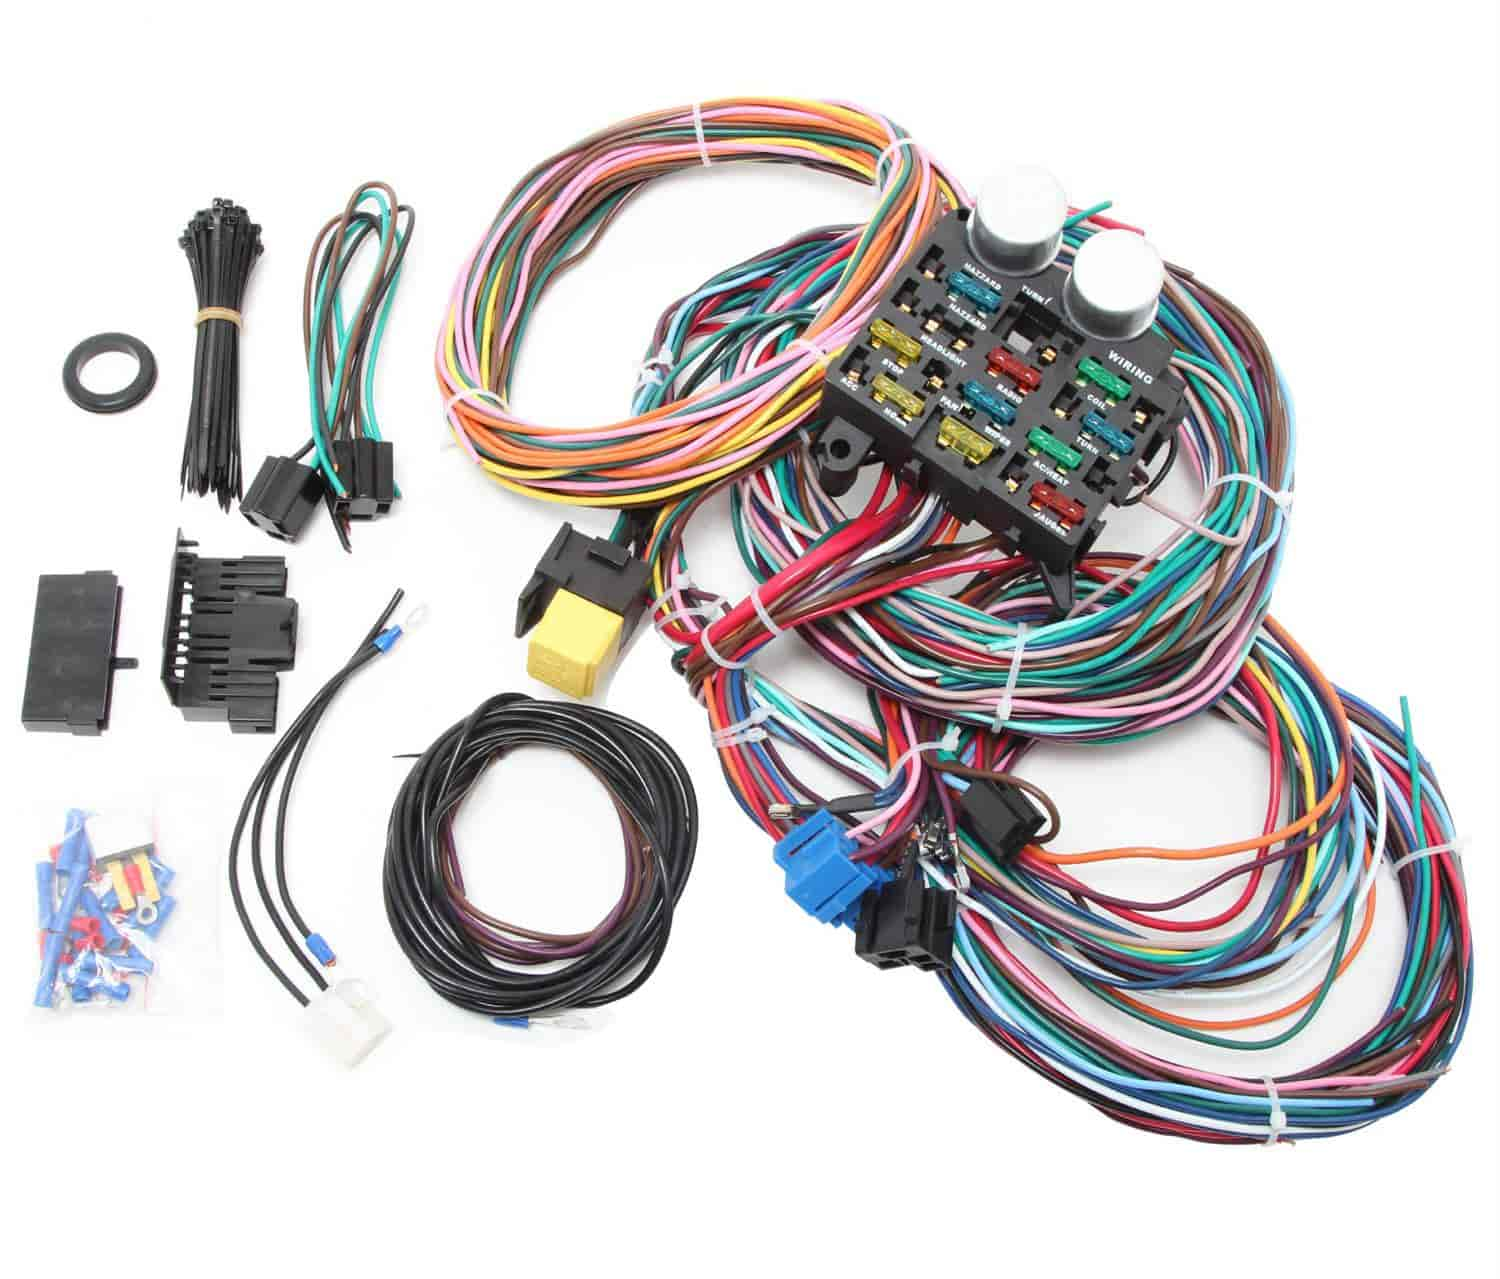 707 r1002x rpc r1002x universal 12 circuit wire harness kit jegs jegs universal wiring harness at alyssarenee.co